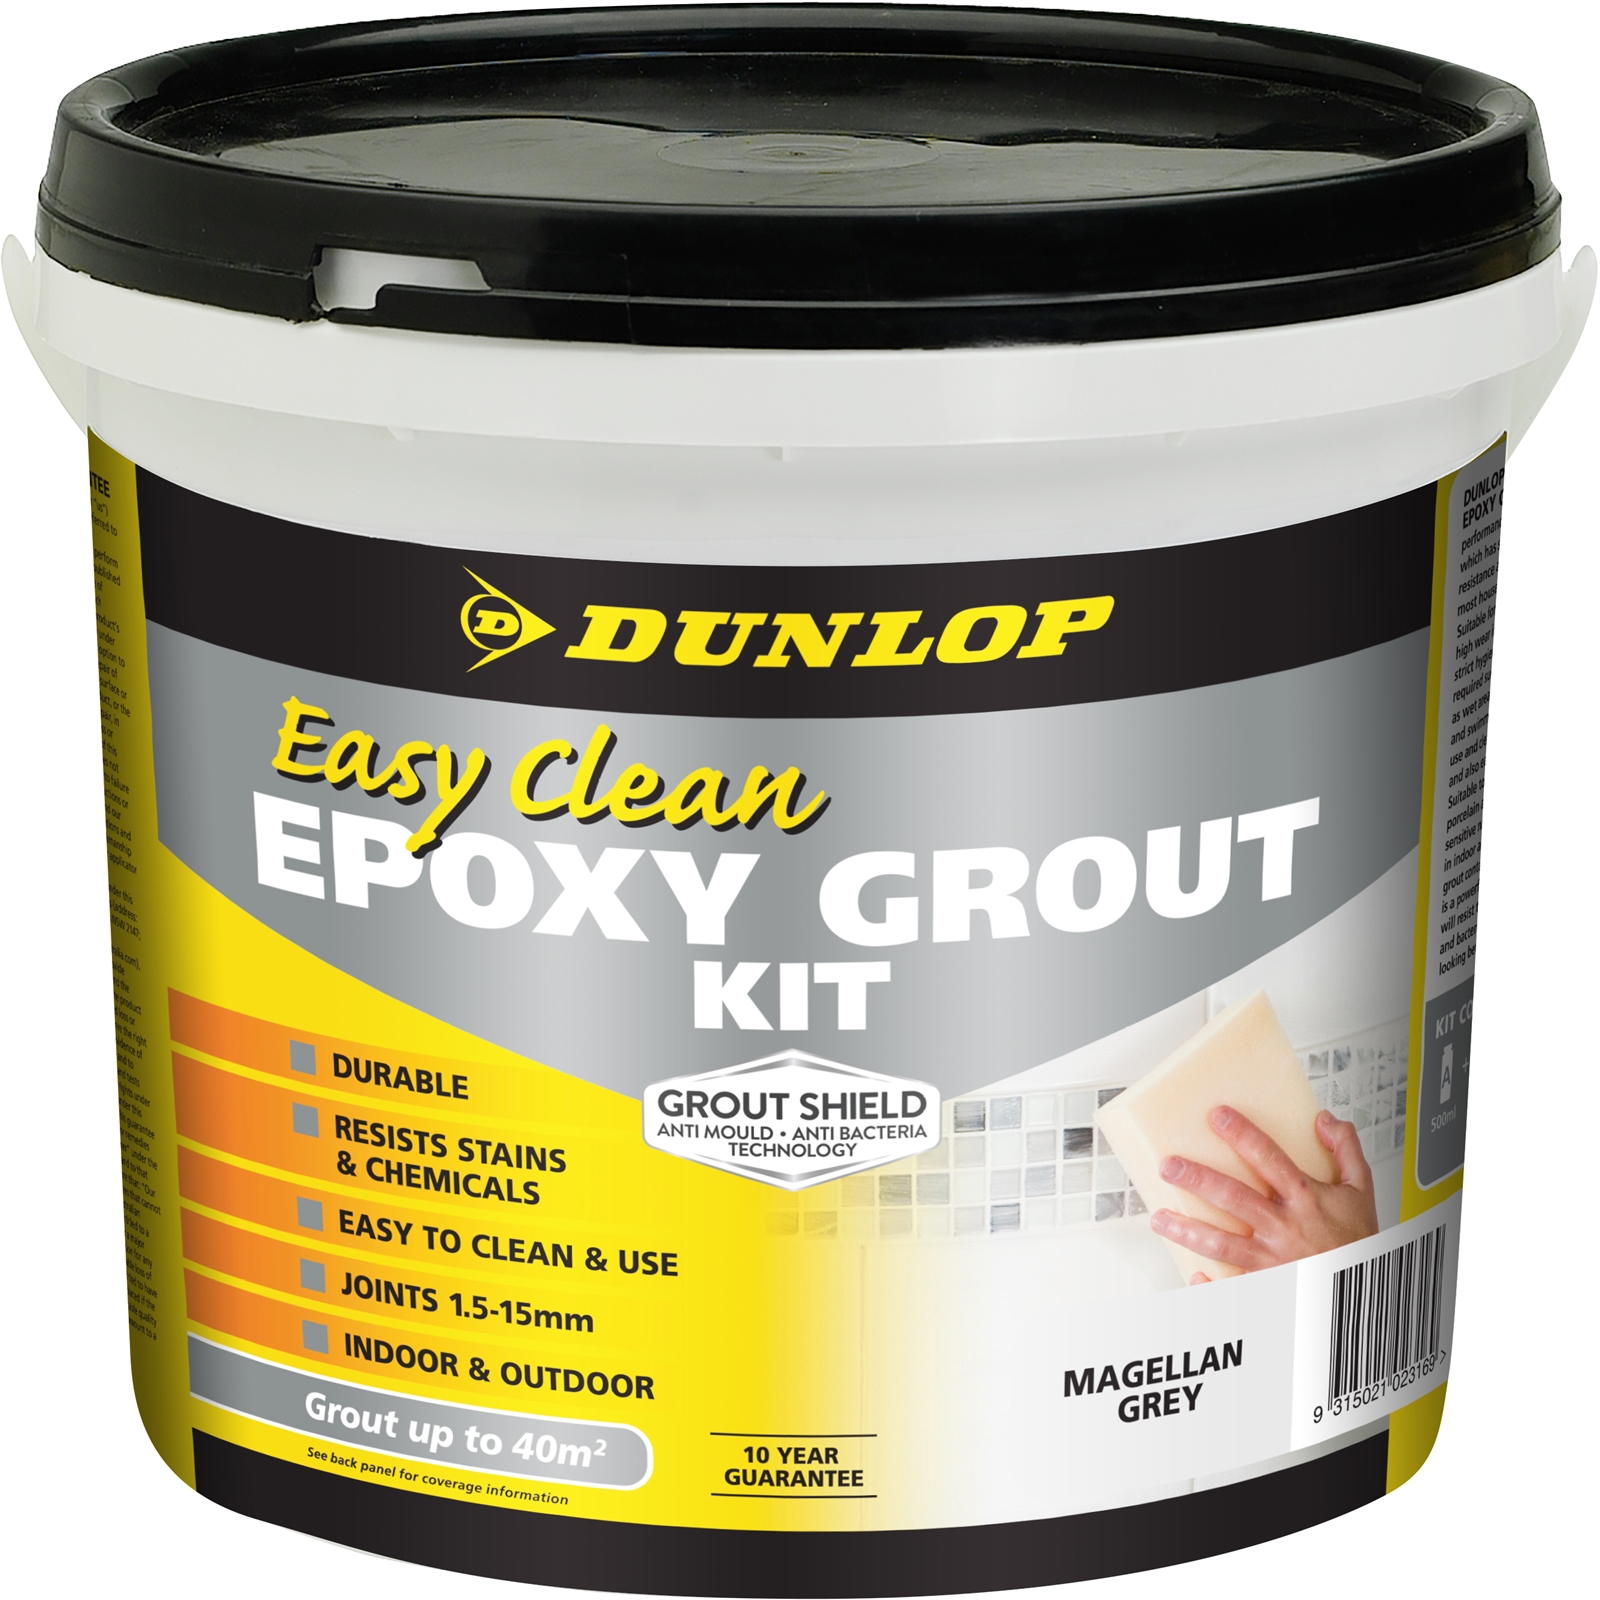 Dunlop Easy Clean Epoxy Grout Kit 3.25kg Joints 1.5-15mm